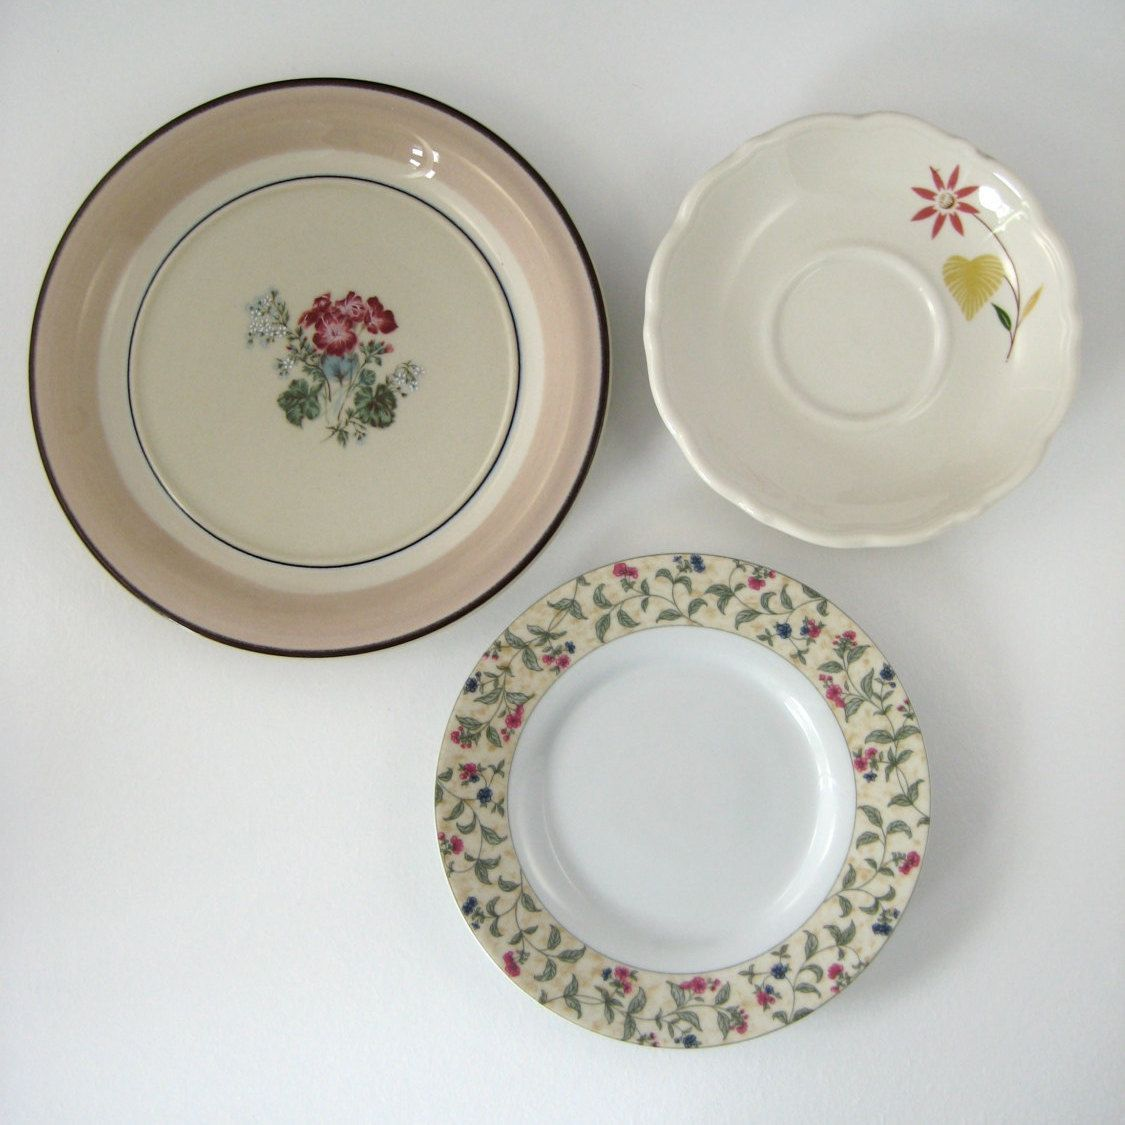 Decorative Plates, Kitchen Wall Decor, Shabby Chic Cottage Home Decor,  Vintage Plate Set